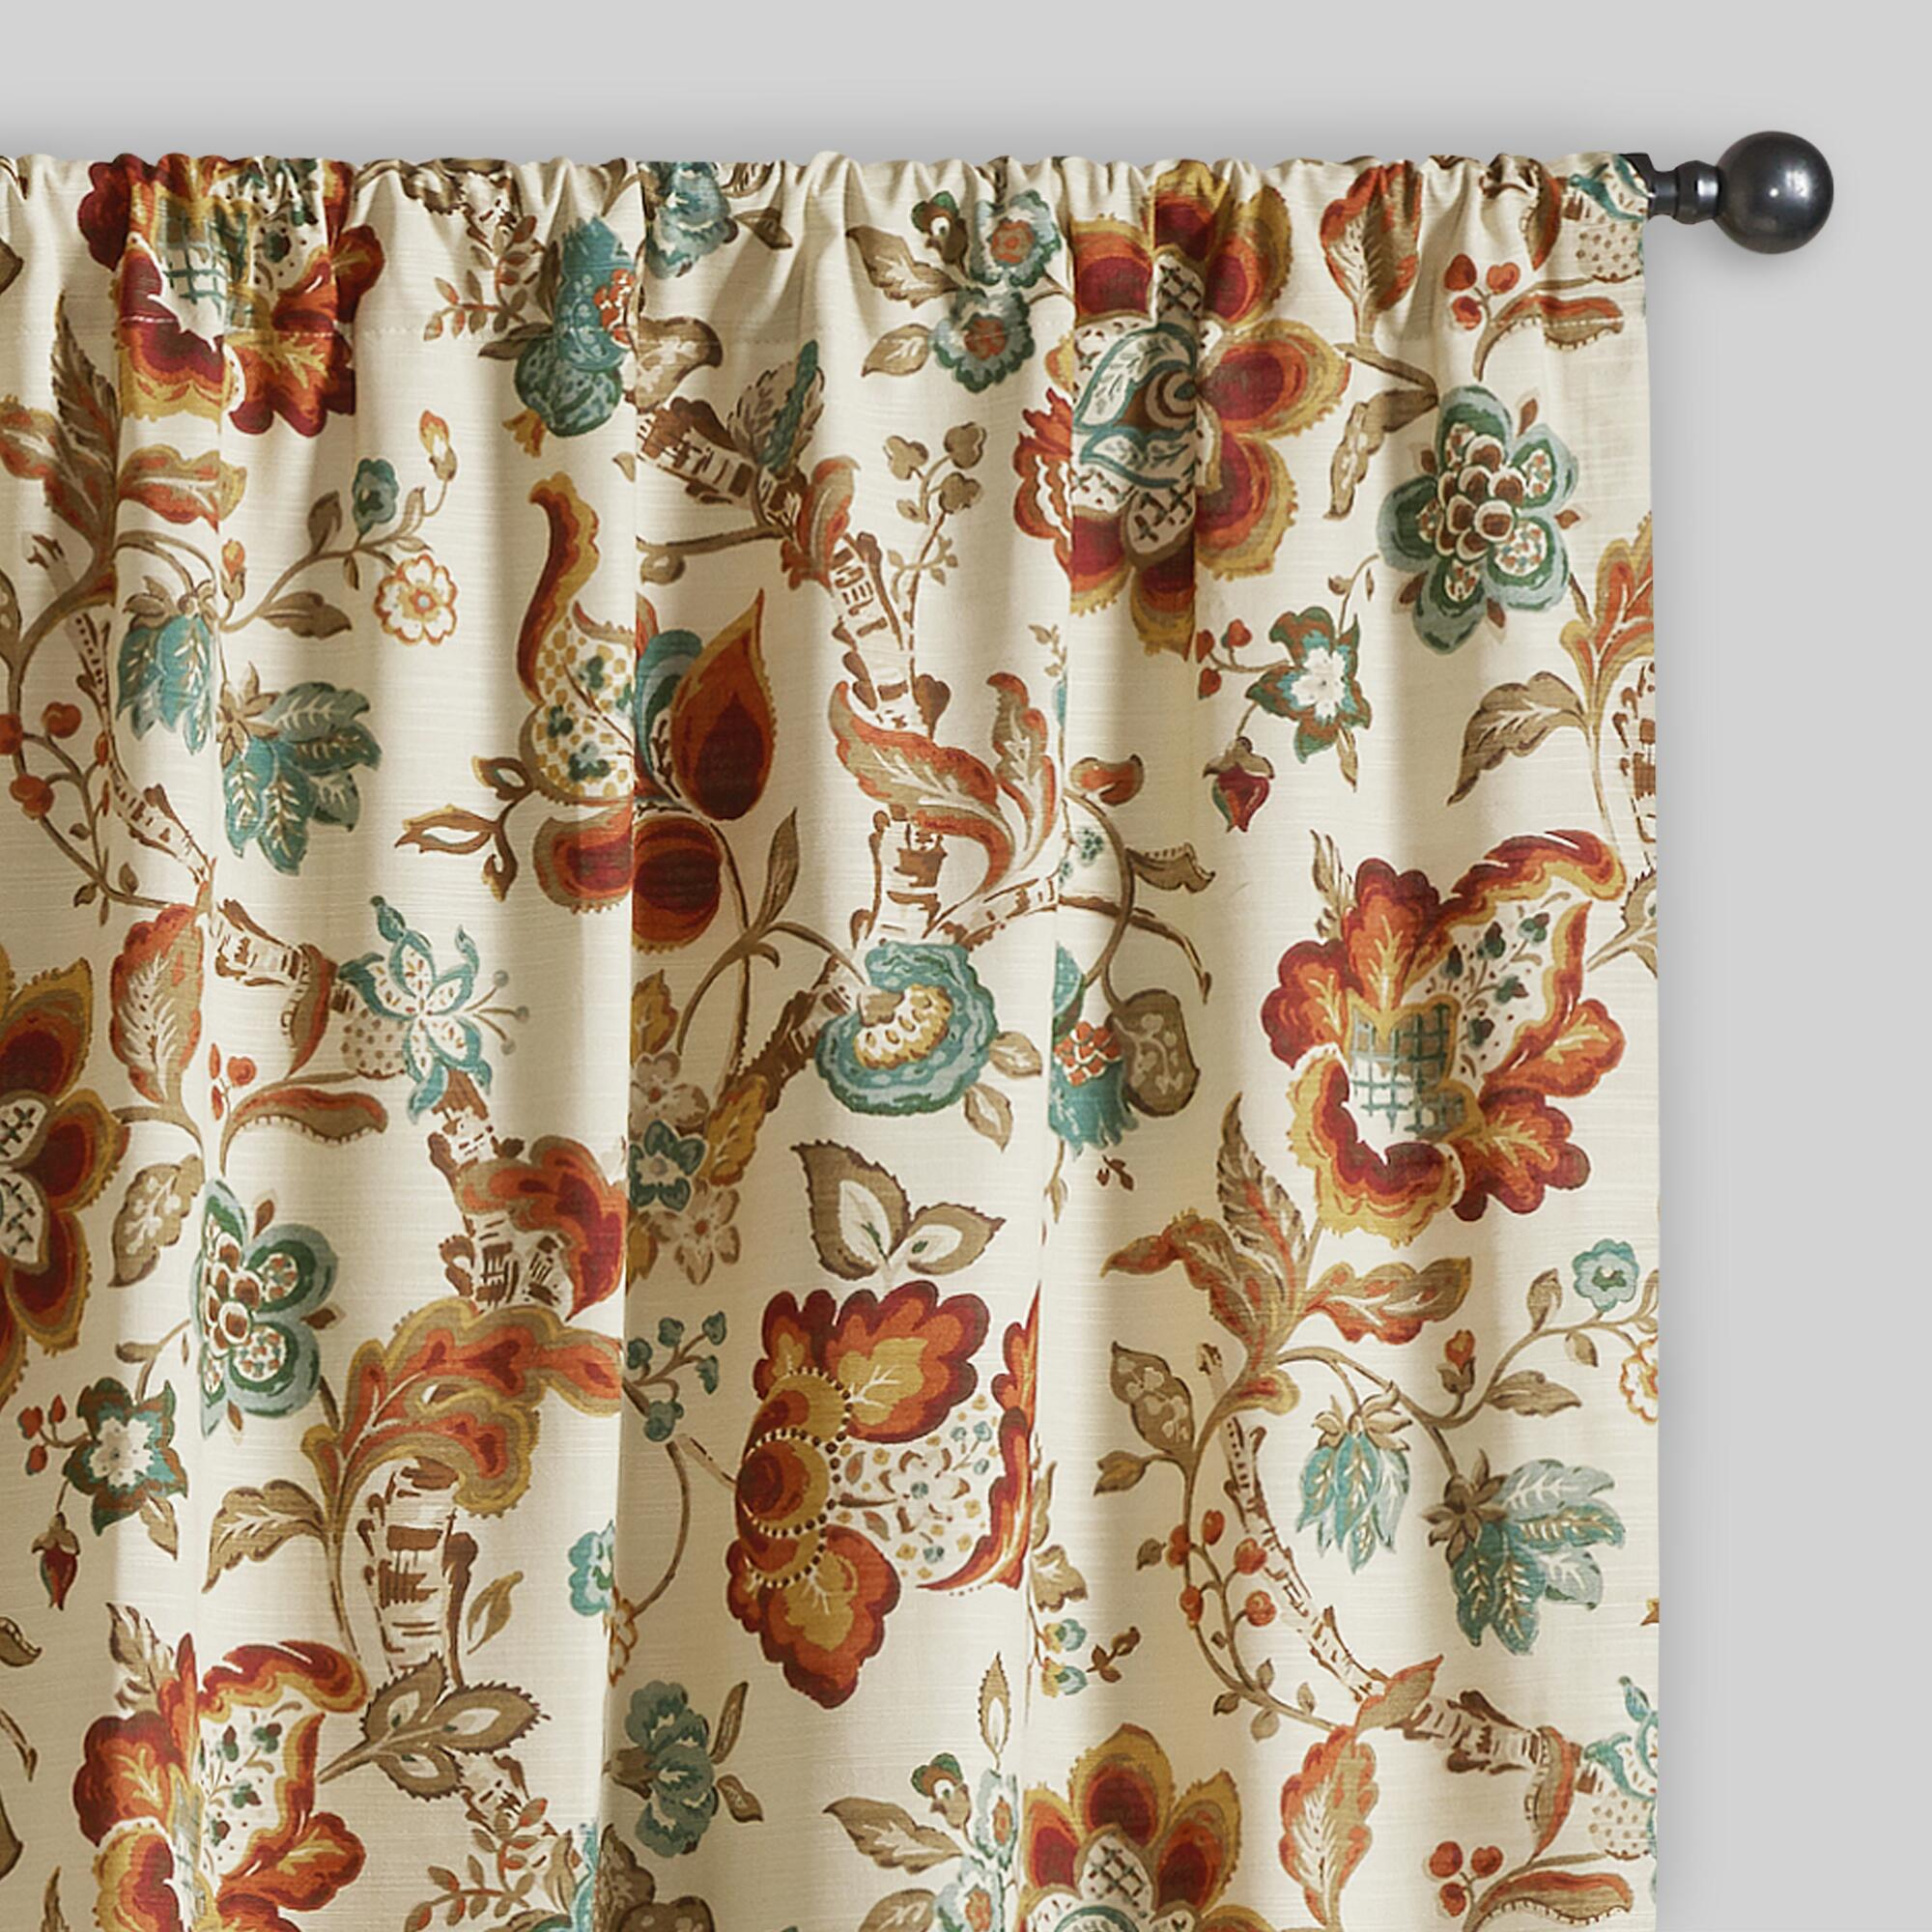 Solid teal shower curtain - Multicolor Floral Malli Sleevetop Curtains Set Of 2